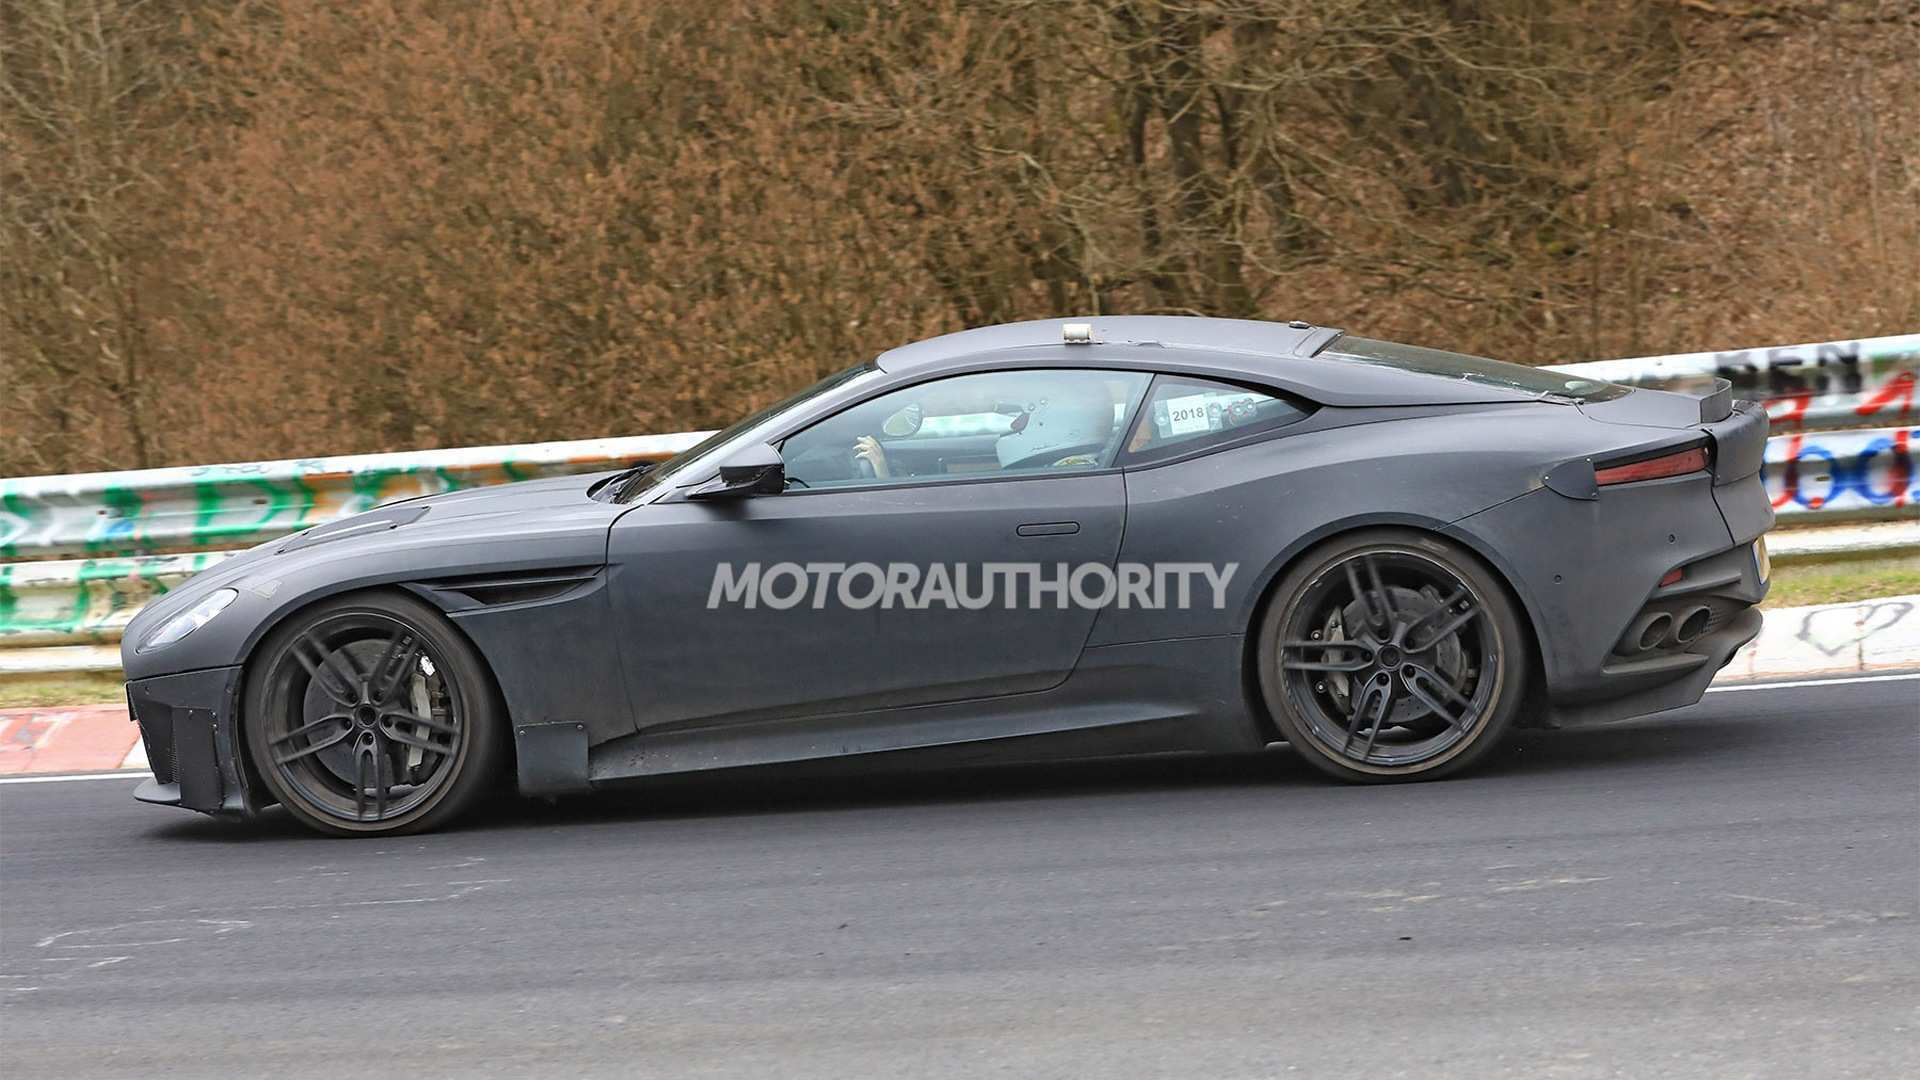 81 All New 2020 Aston Martin DB9 Overview by 2020 Aston Martin DB9